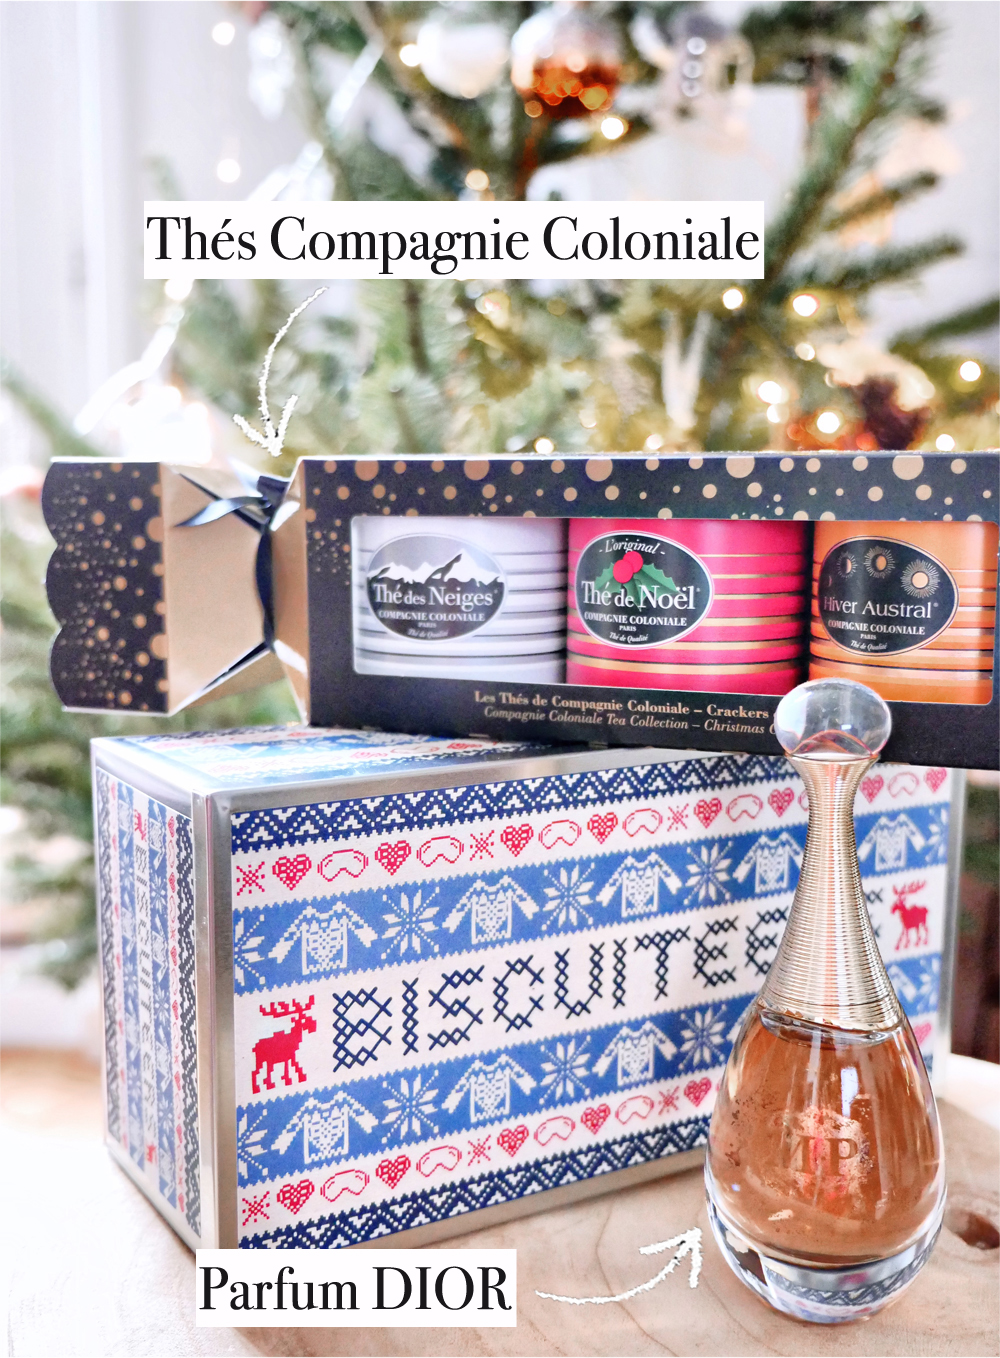 THE-compagnie-coloniale-1